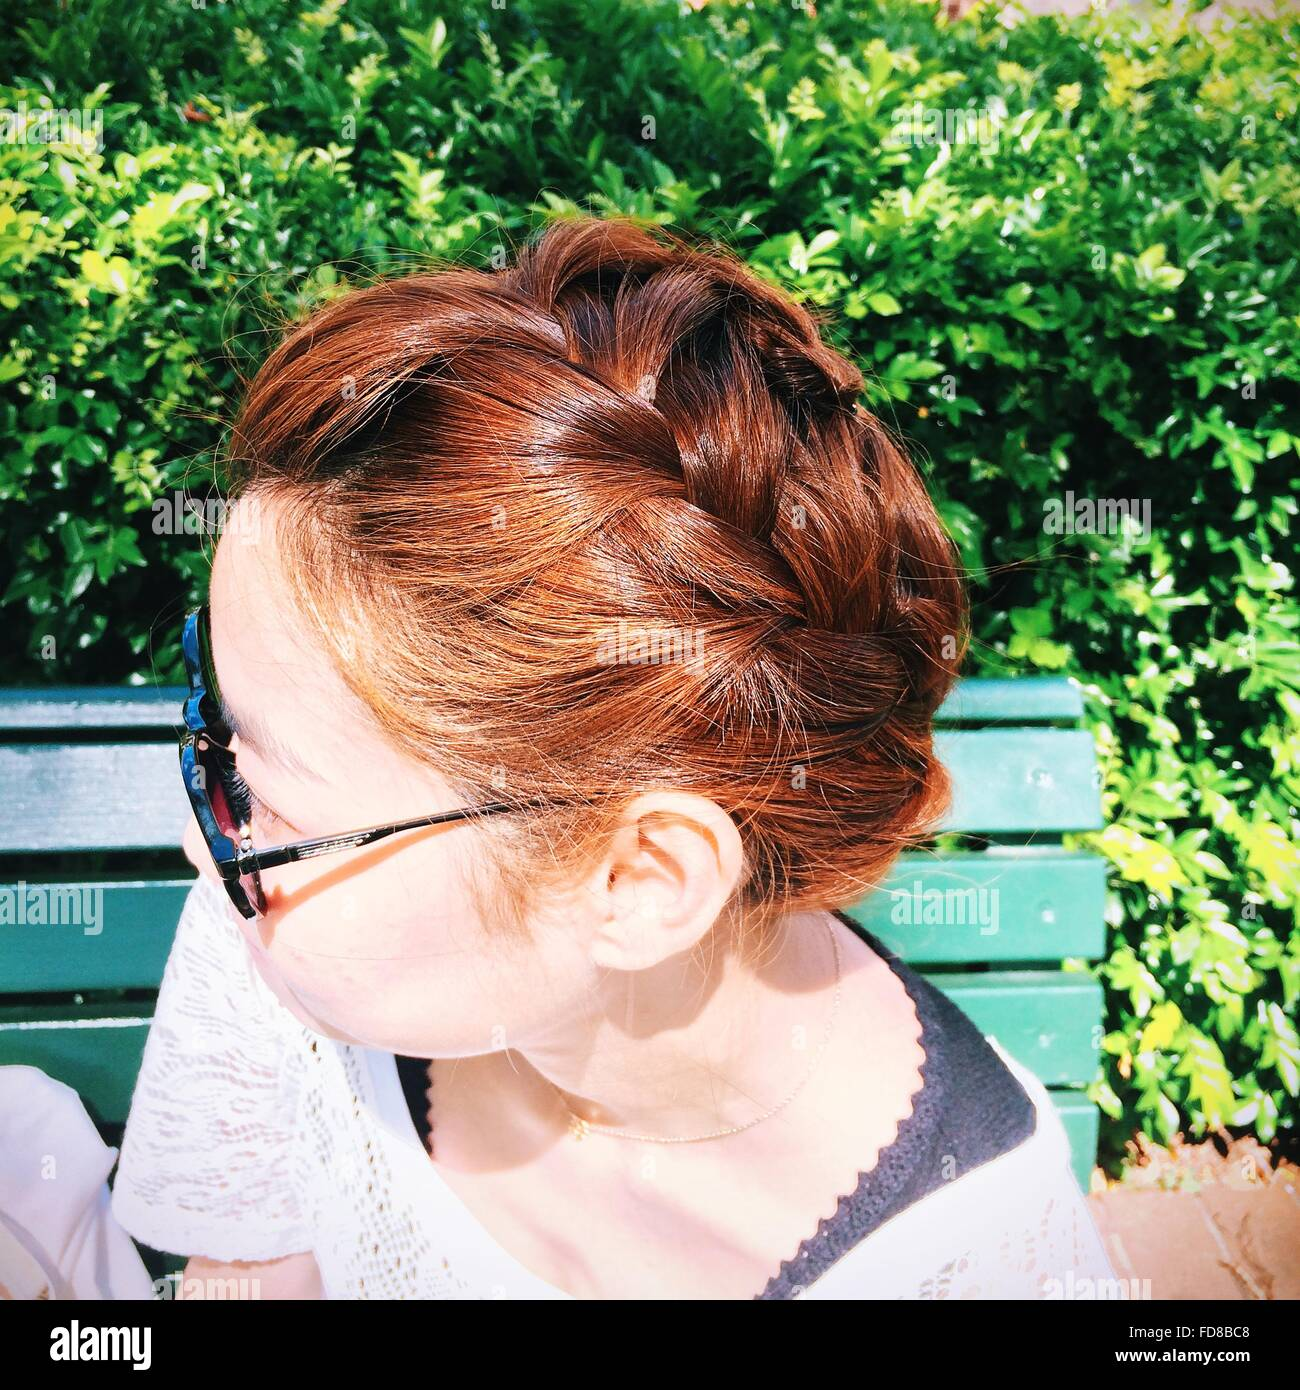 Side View Of Woman With Braided Hair, Wearing Sunglasses - Stock Image